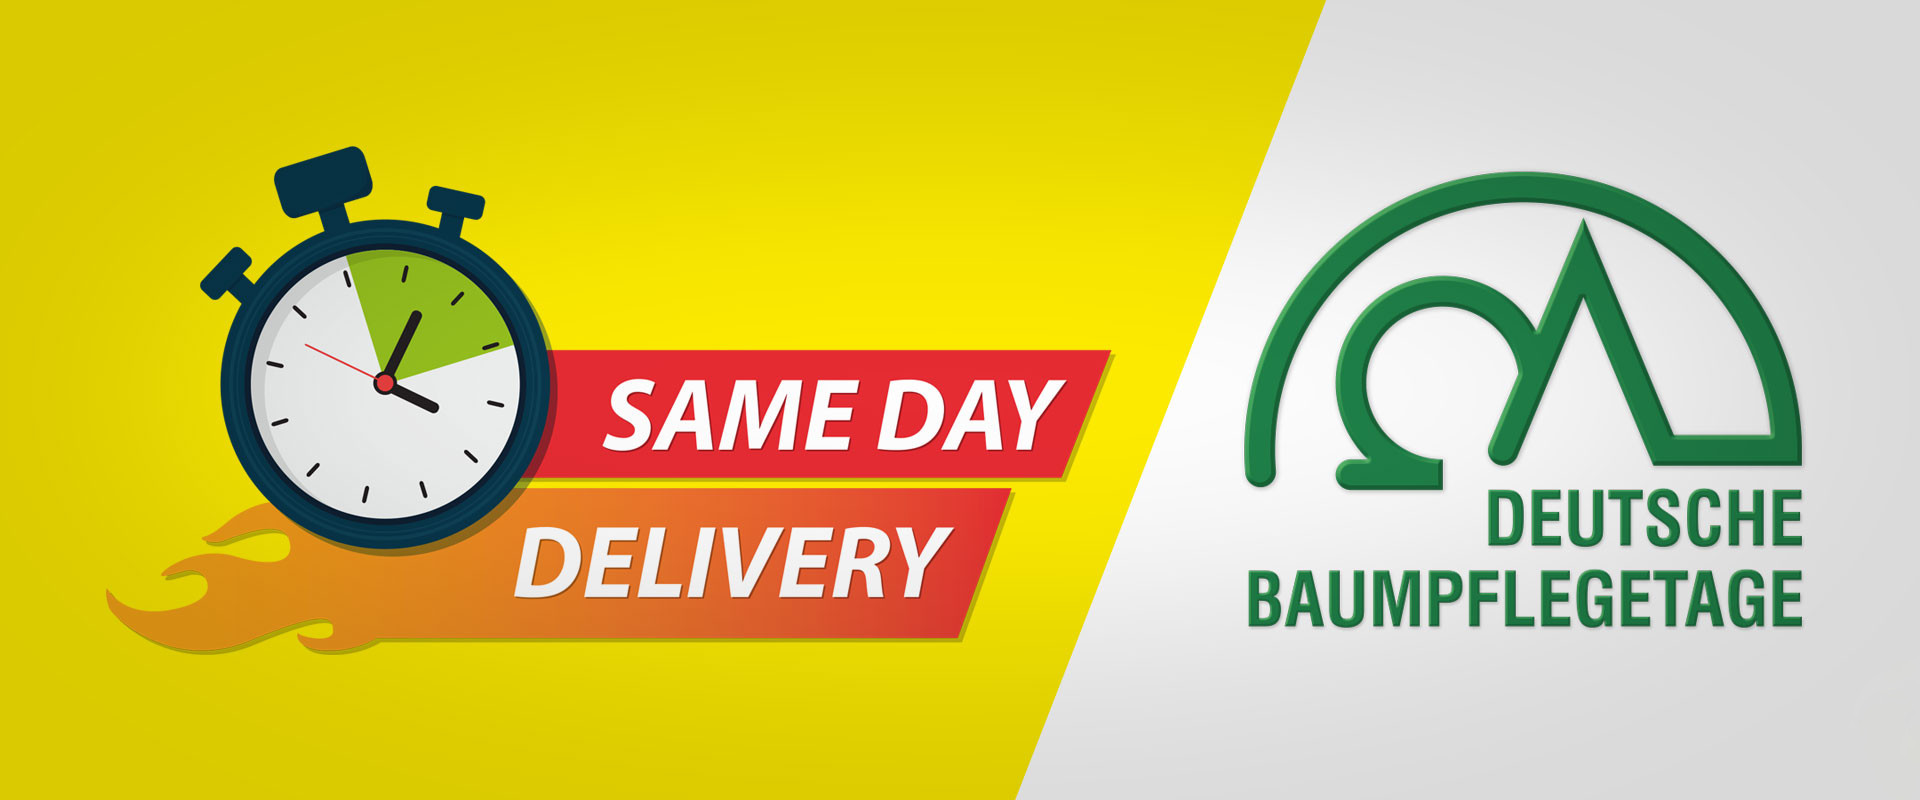 Baumpflegetage 2018: Same Day Delivery